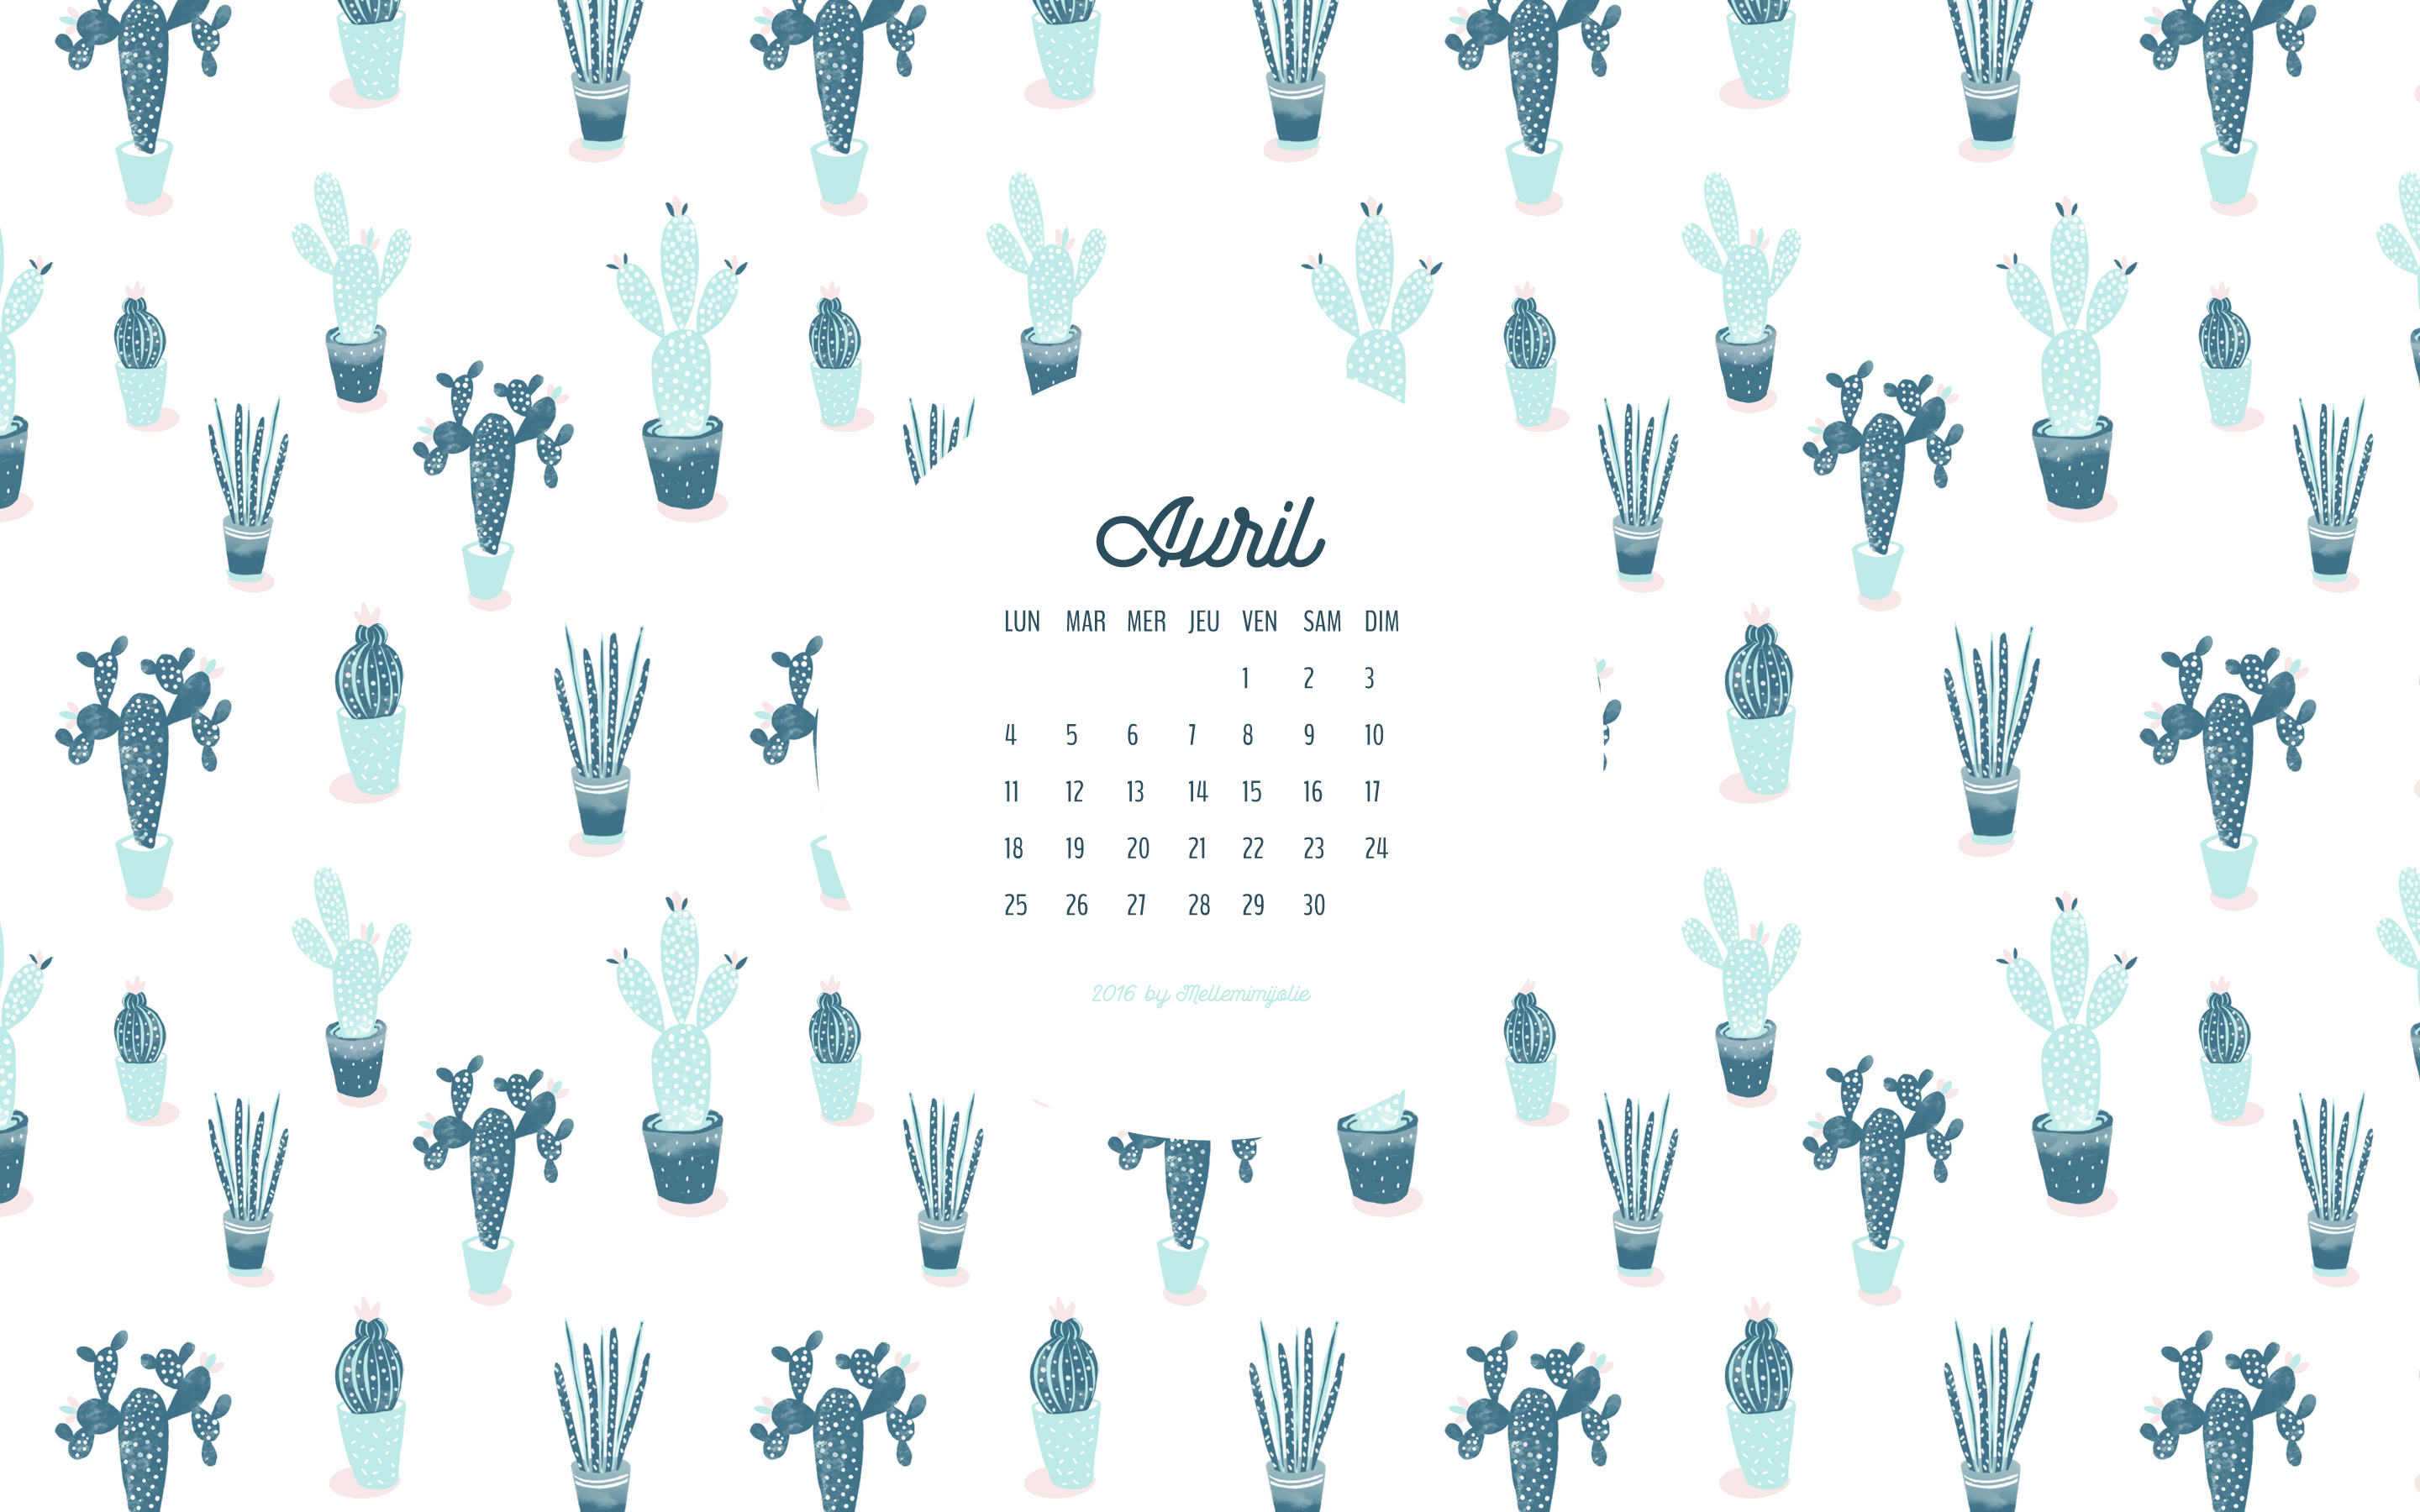 Cute Cactus Wallpaper Macbook Calendrier D Avril Mellemimijolie